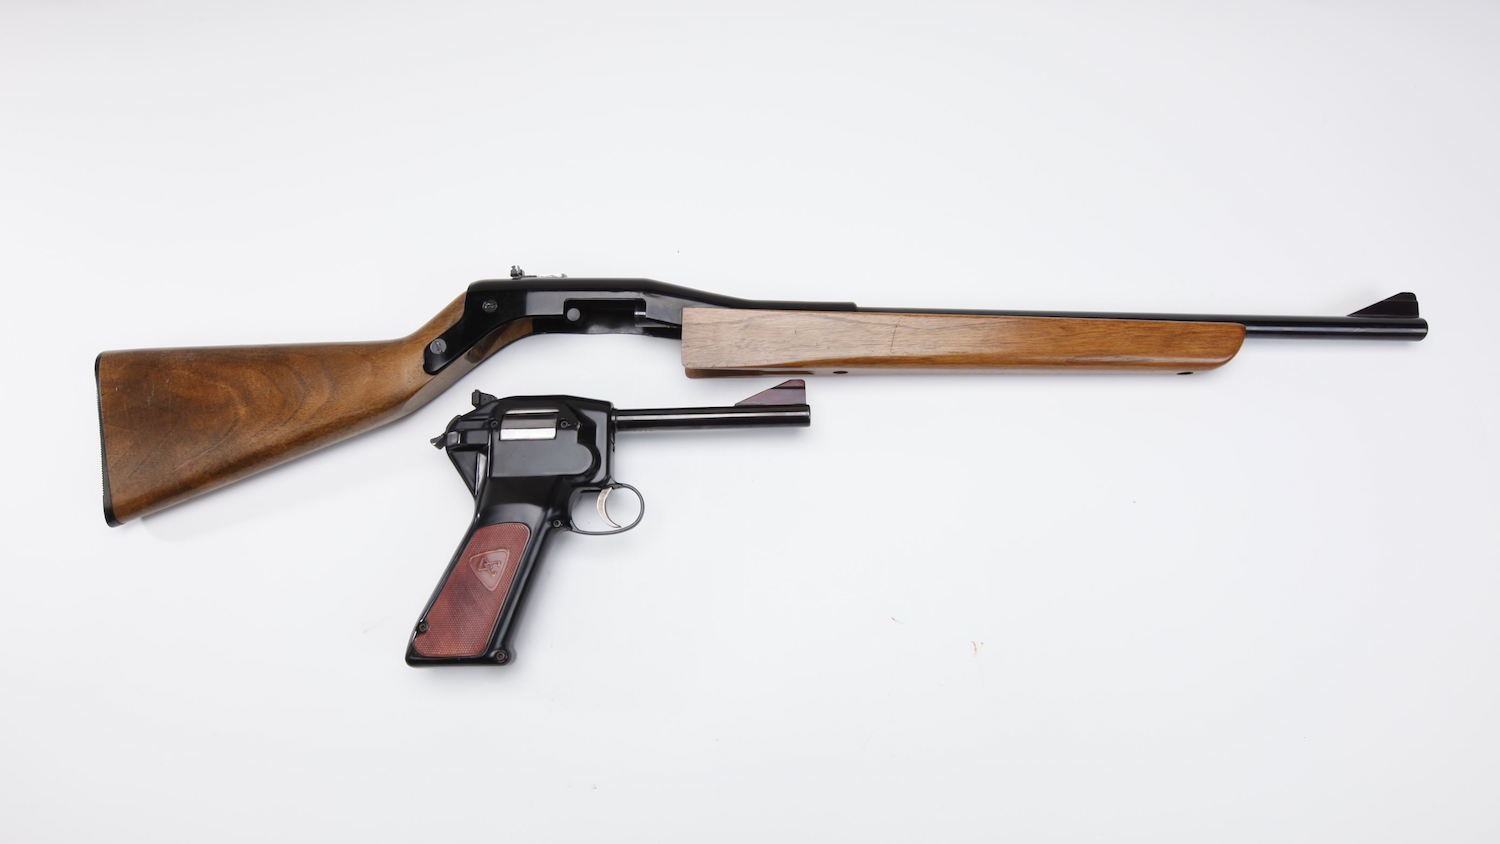 A brief history of the peculiar Dardick revolver and 'tround'